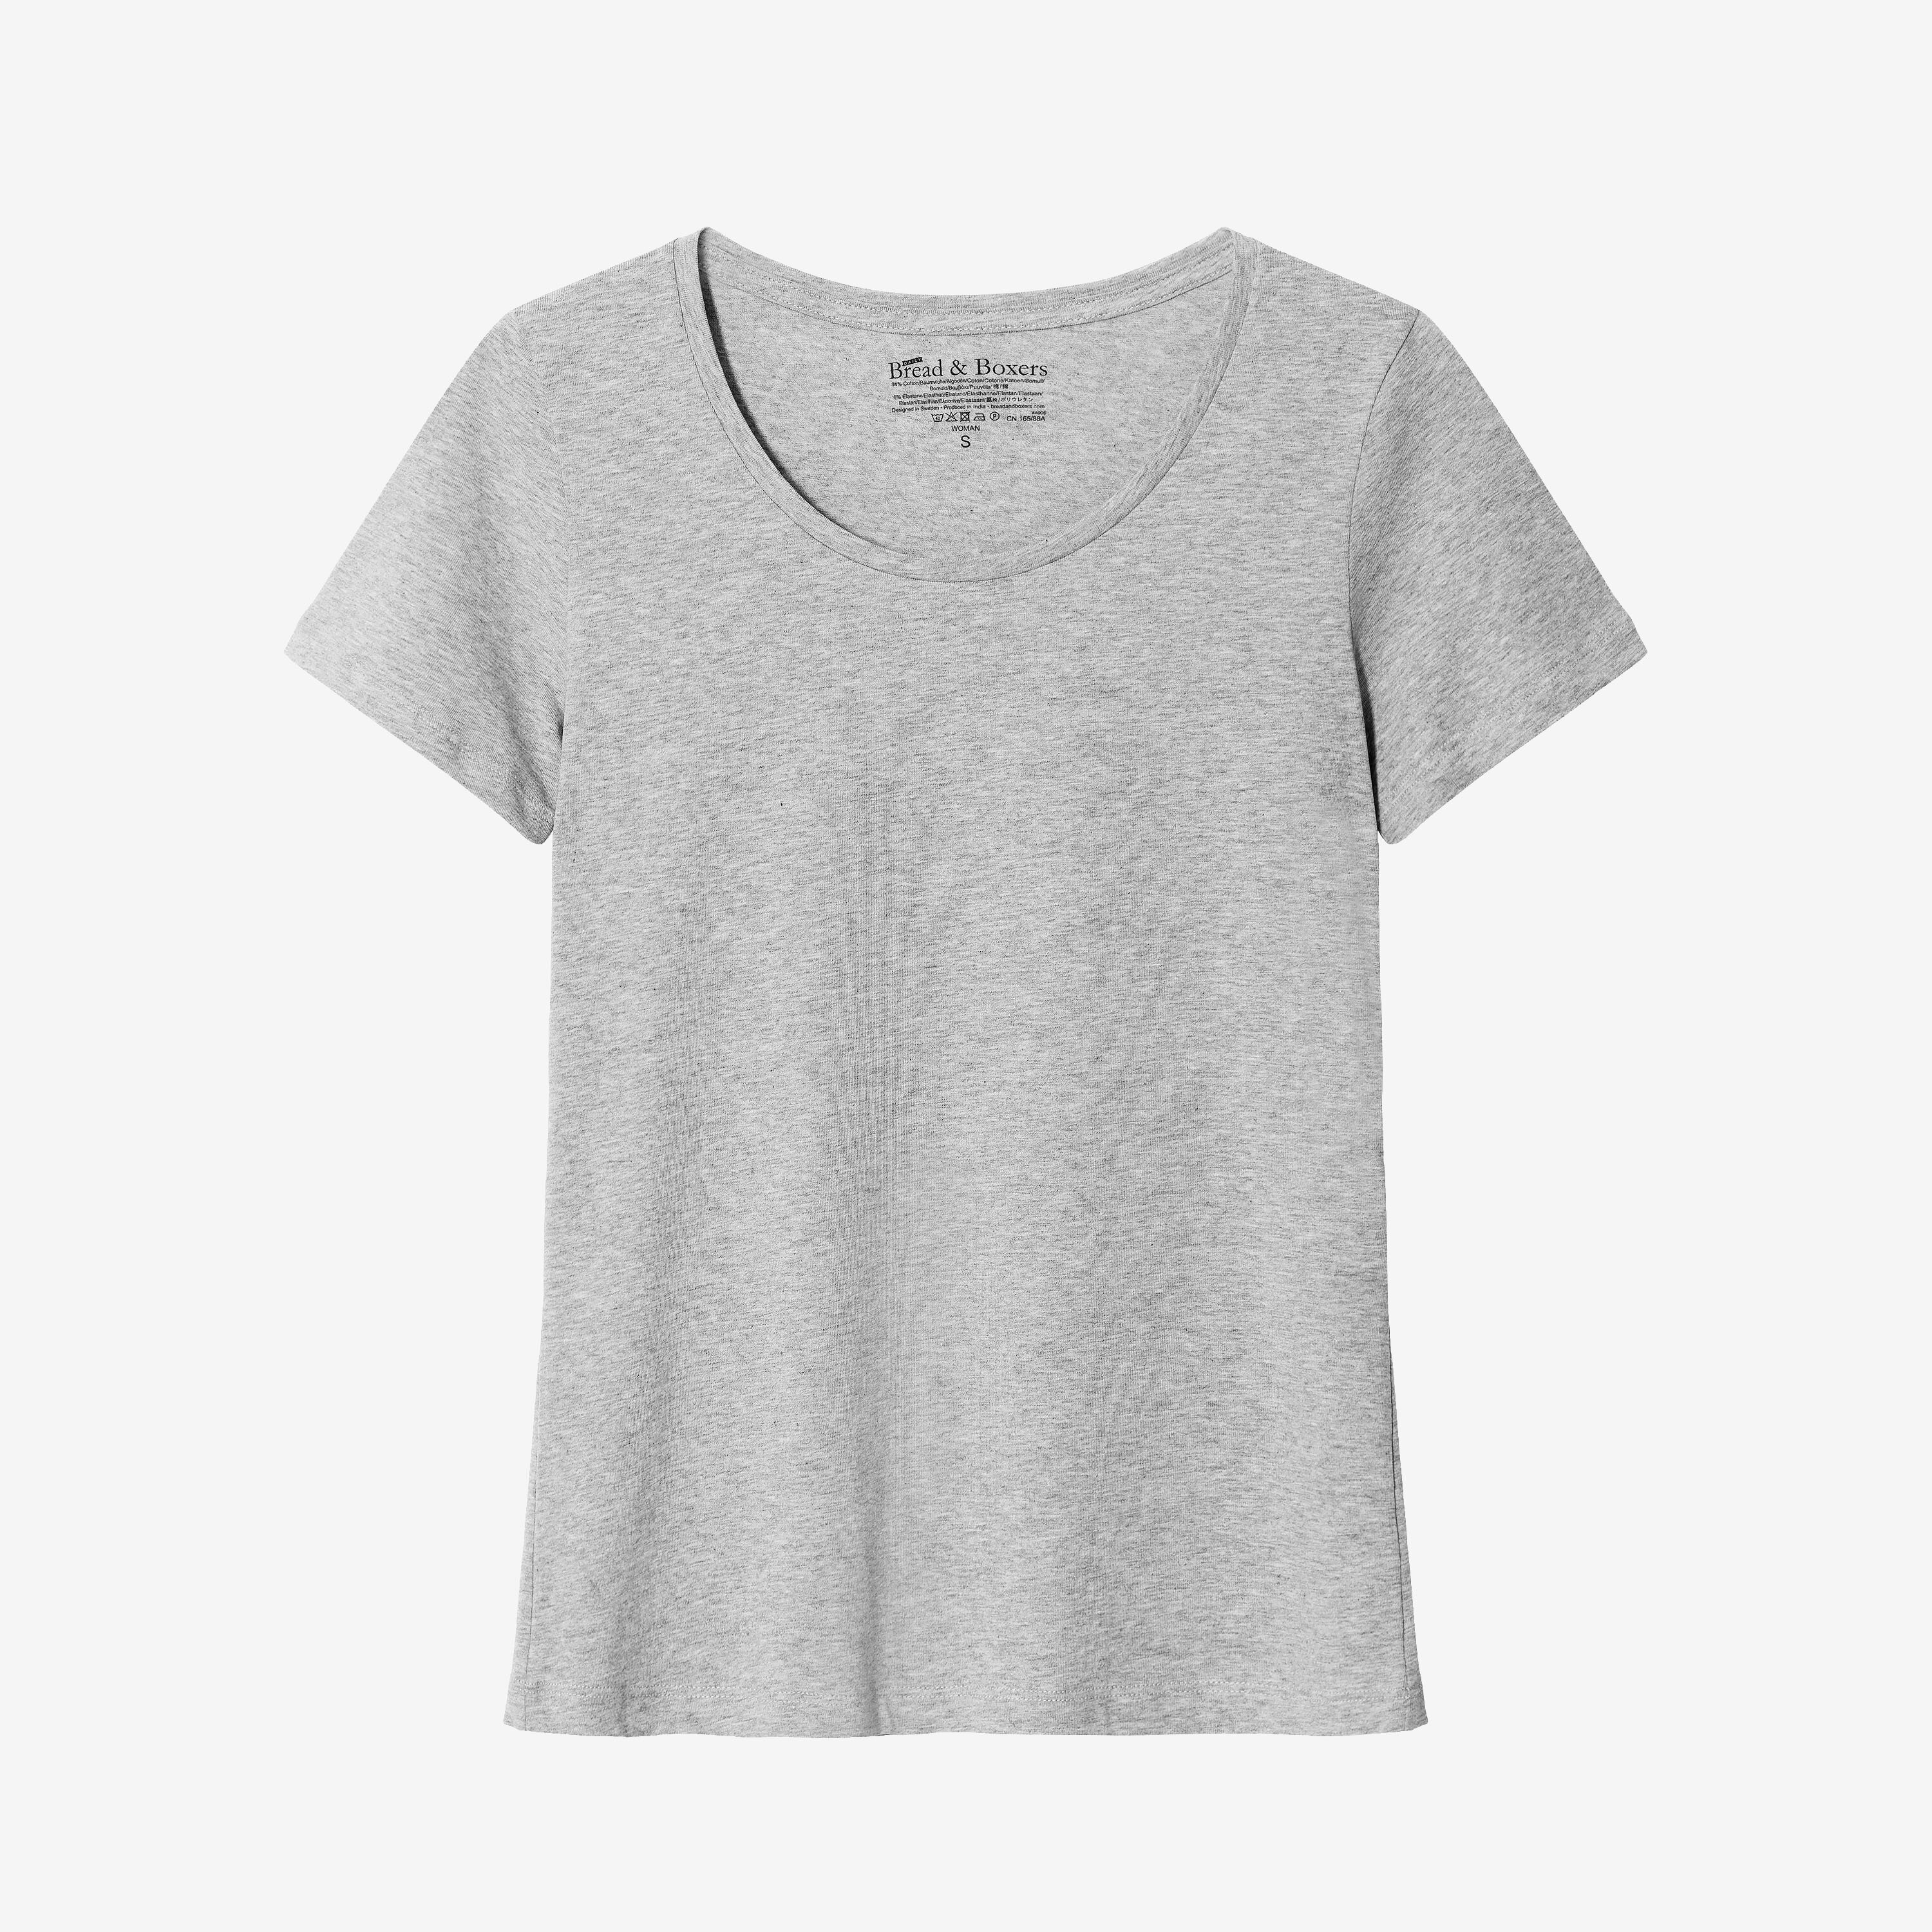 601-03_Crew-Neck_grey-melange_CO-A